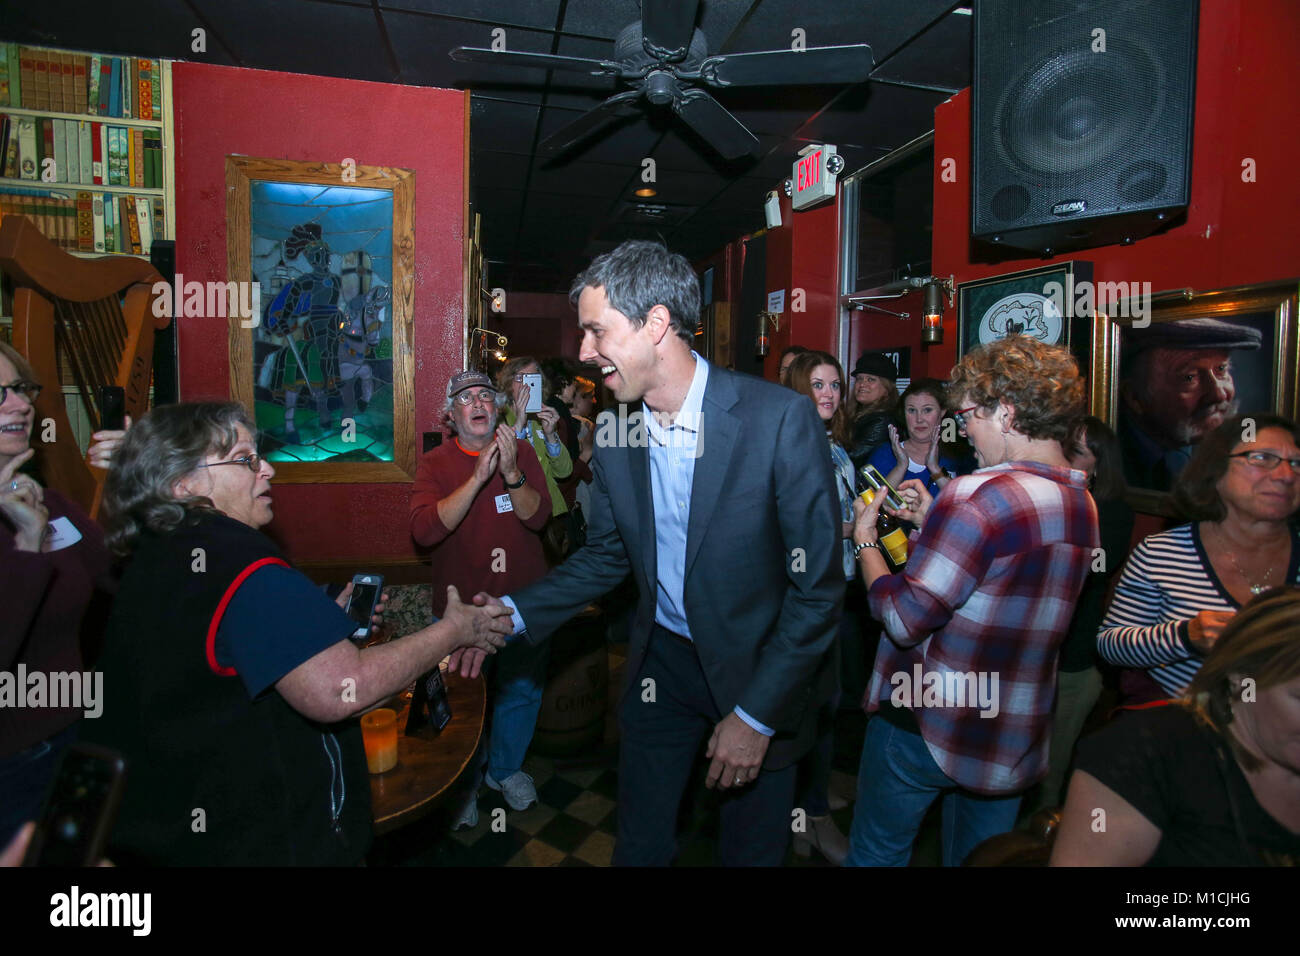 Houston, Texas, USA. 28th January, 2018. Beto O'Rourke, D-Texas arrives at a Bands for Beto event at the Mucky Duck Stock Photo